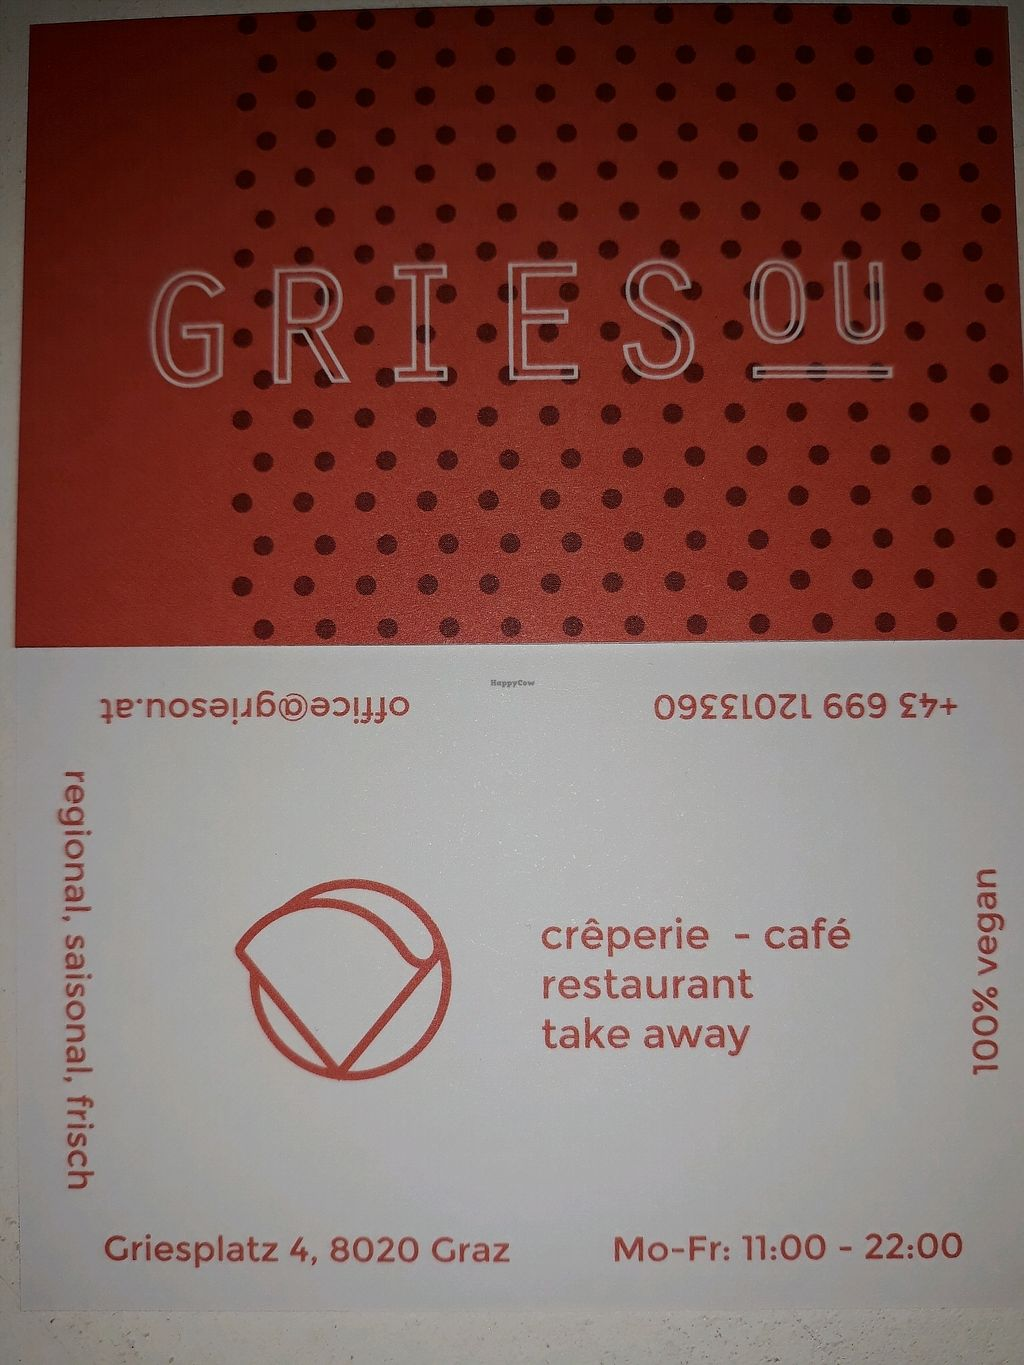 """Photo of Griesou  by <a href=""""/members/profile/presidentzich"""">presidentzich</a> <br/>Logo & businesscard <br/> November 21, 2017  - <a href='/contact/abuse/image/104501/327787'>Report</a>"""